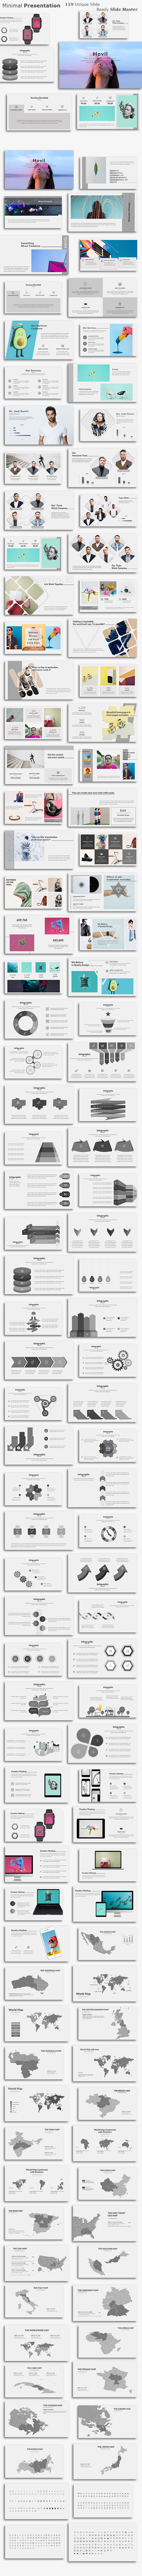 Hovil Minimal Google Slide Template - Google Slides Presentation Templates